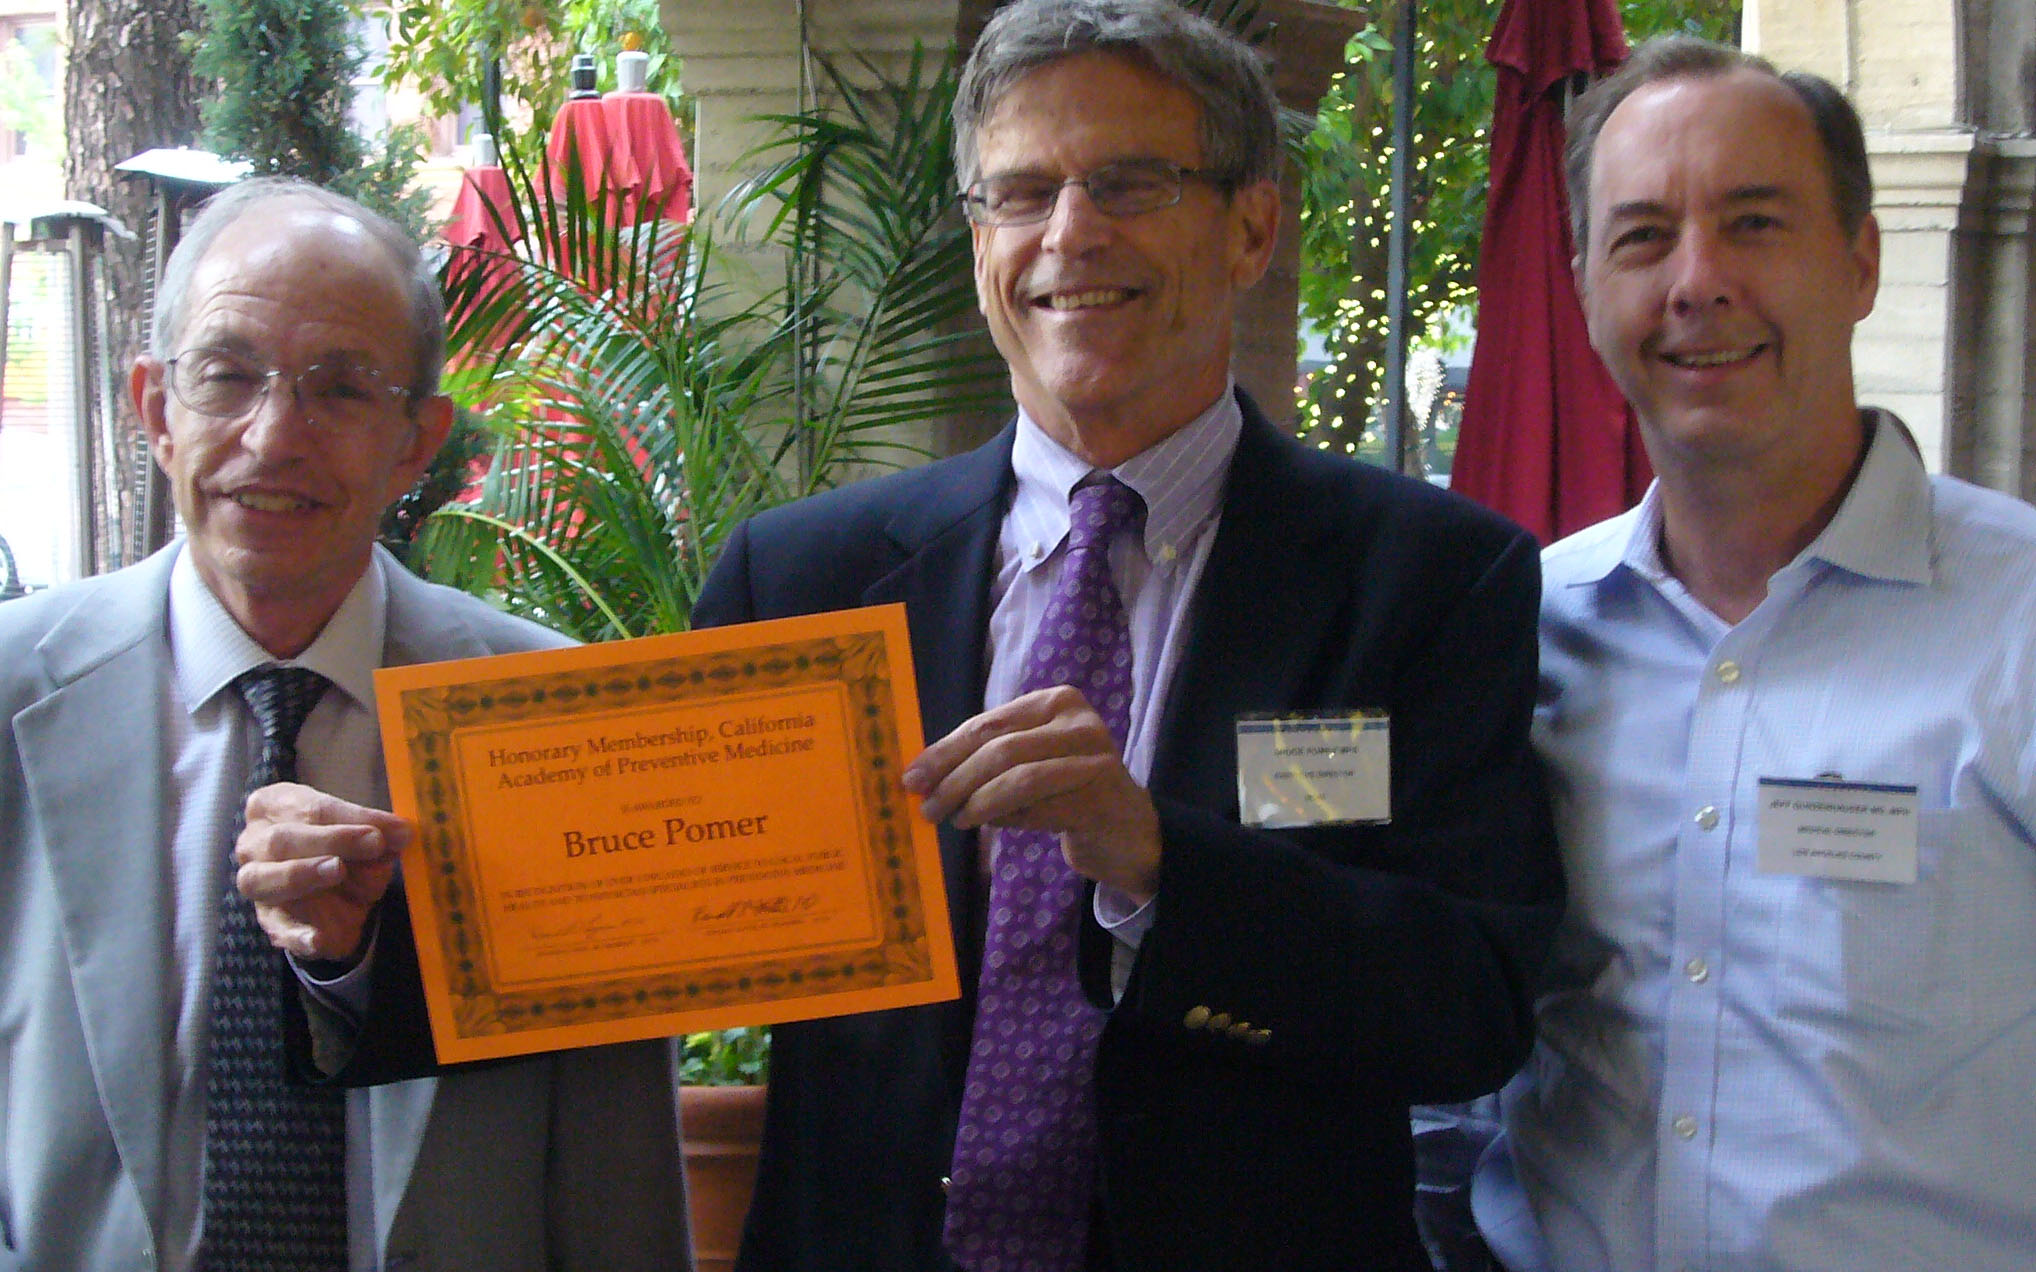 Bruce Pomer displays honorary membership, with past-presidents Ronald Hattis (L) and Jeff Gunzenhauser (R)